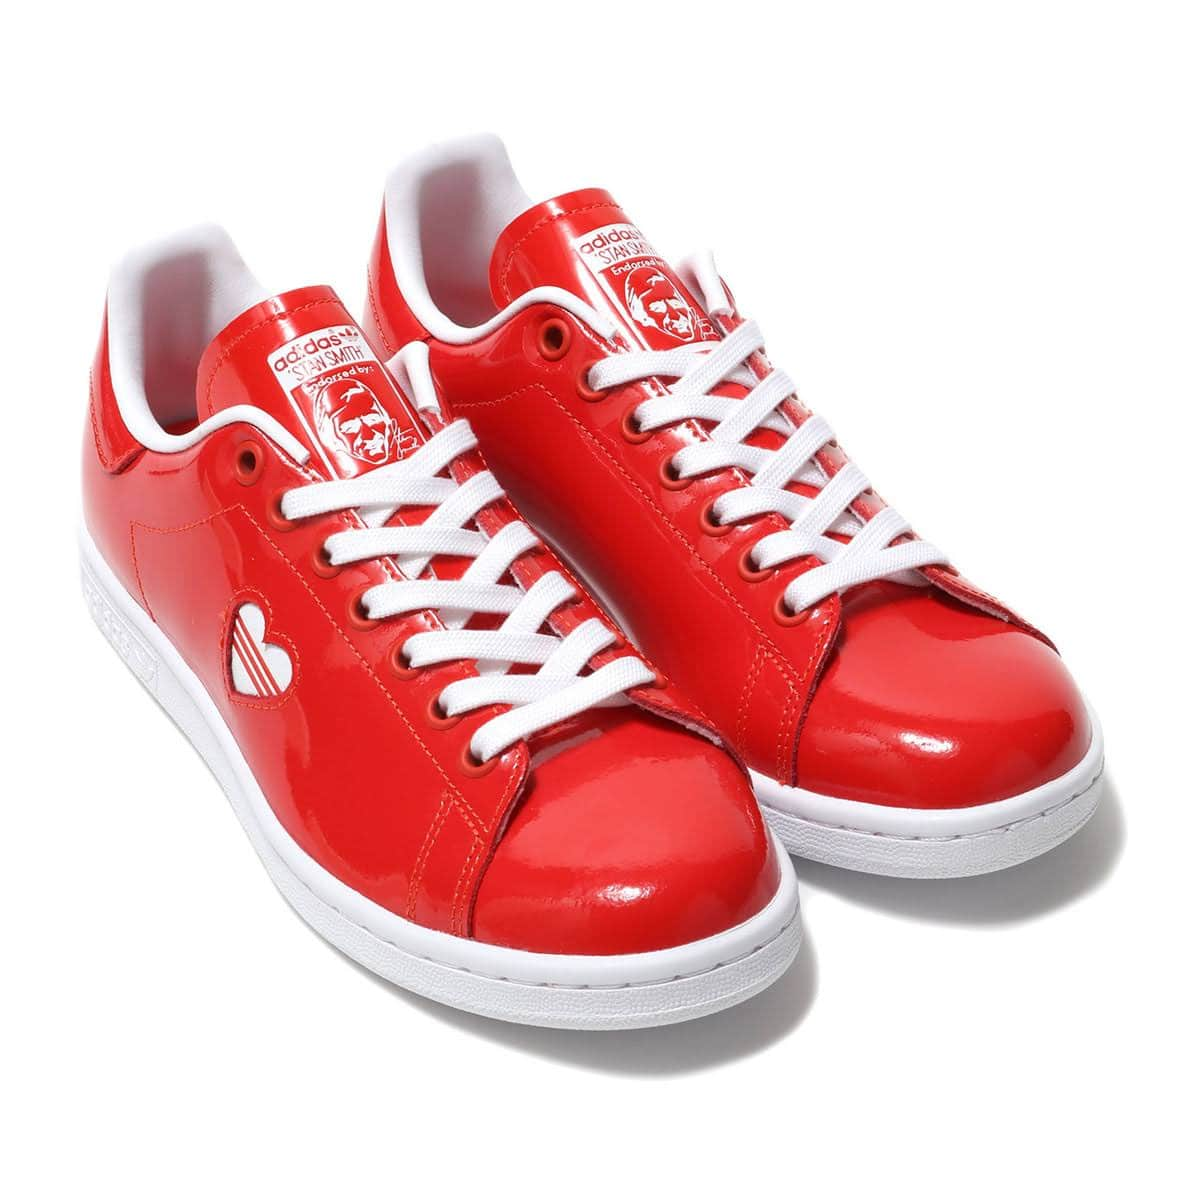 adidas Originals STAN SMITH W ACTIVE RED/RUNNING WHITE/ACTIVE RED 19SS-I_photo_large